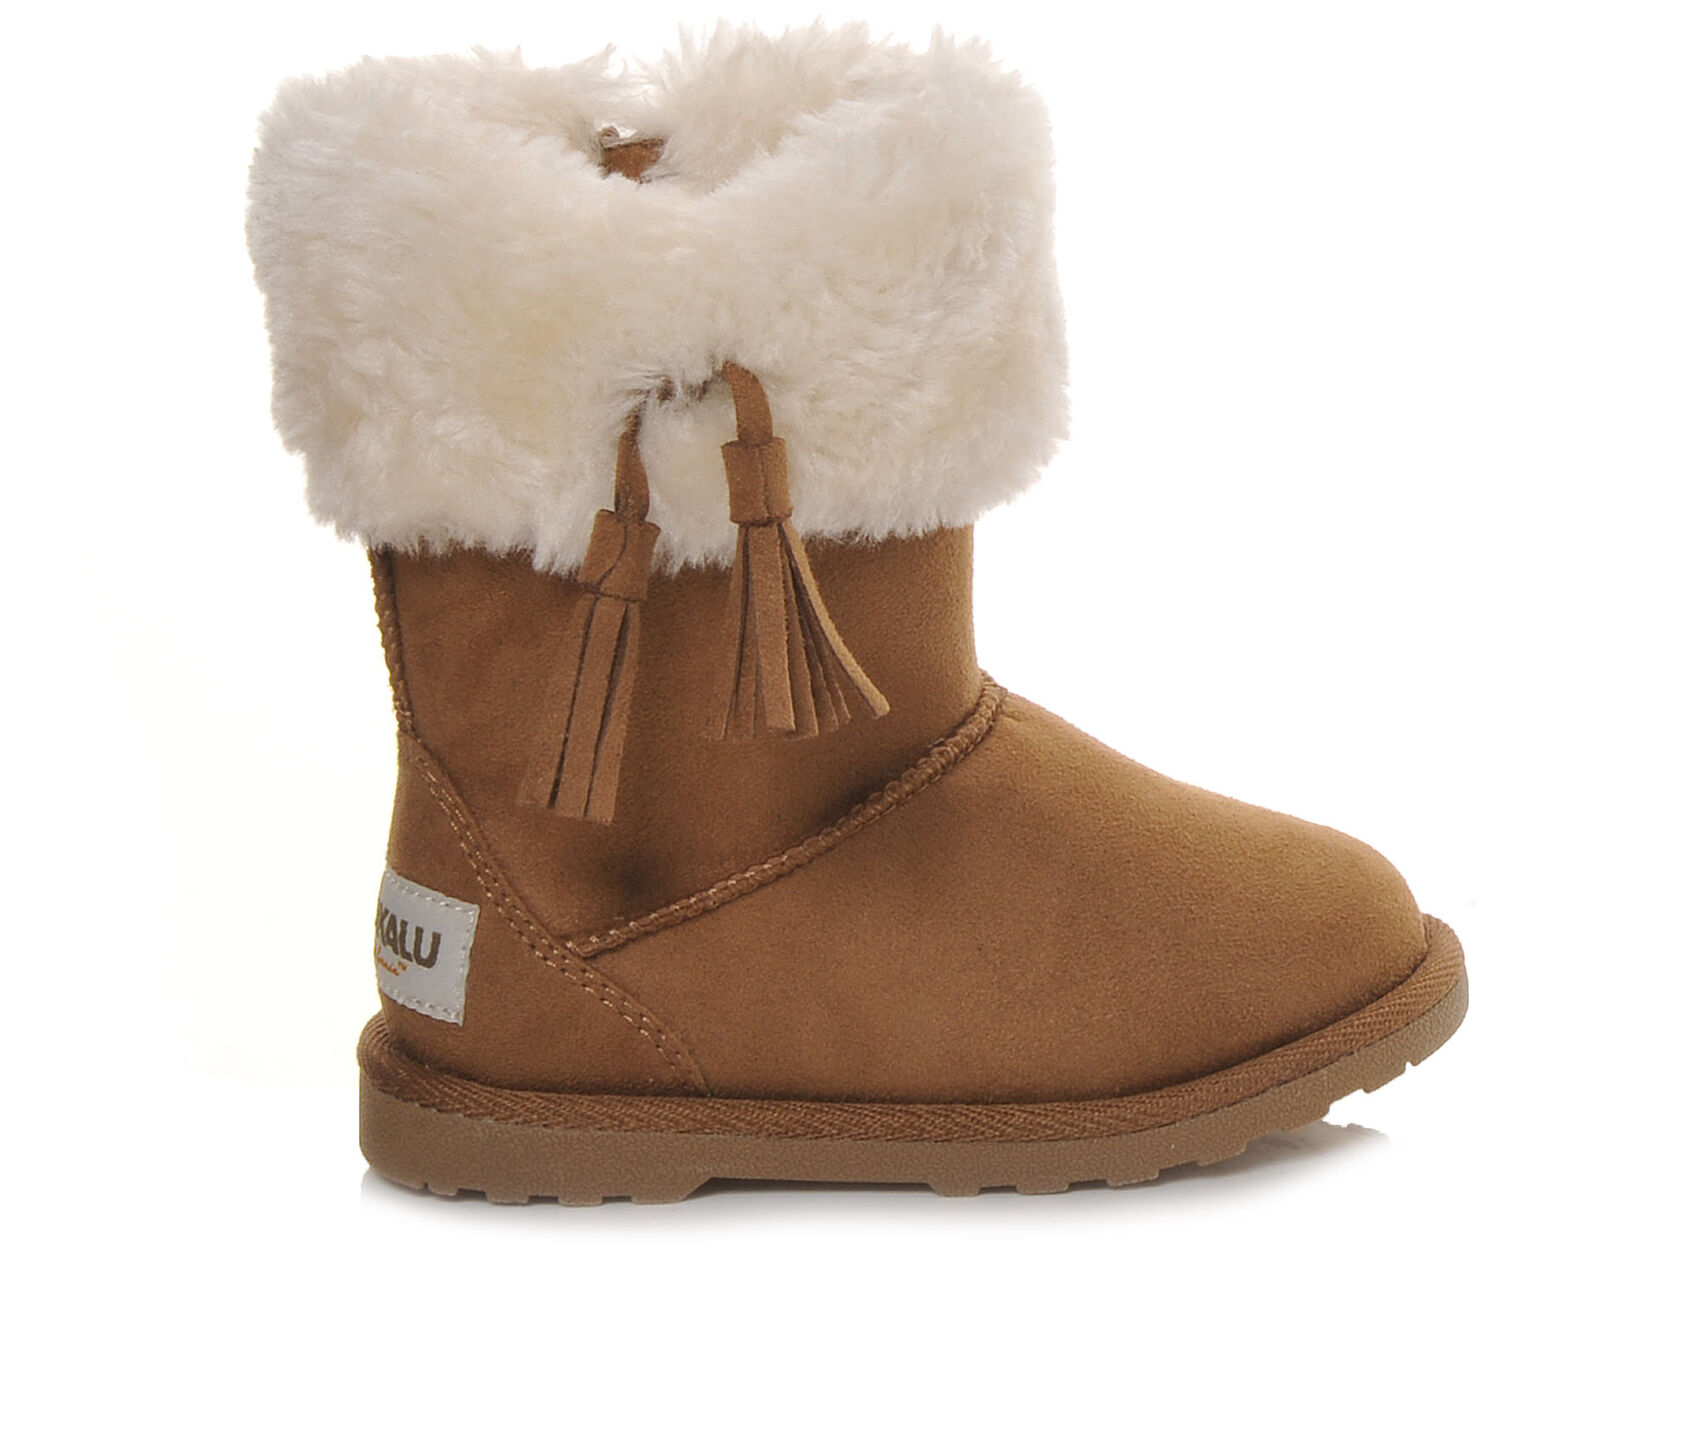 90f35276c71 Girls' Makalu Toddler Iceland Faux-Fur Boots